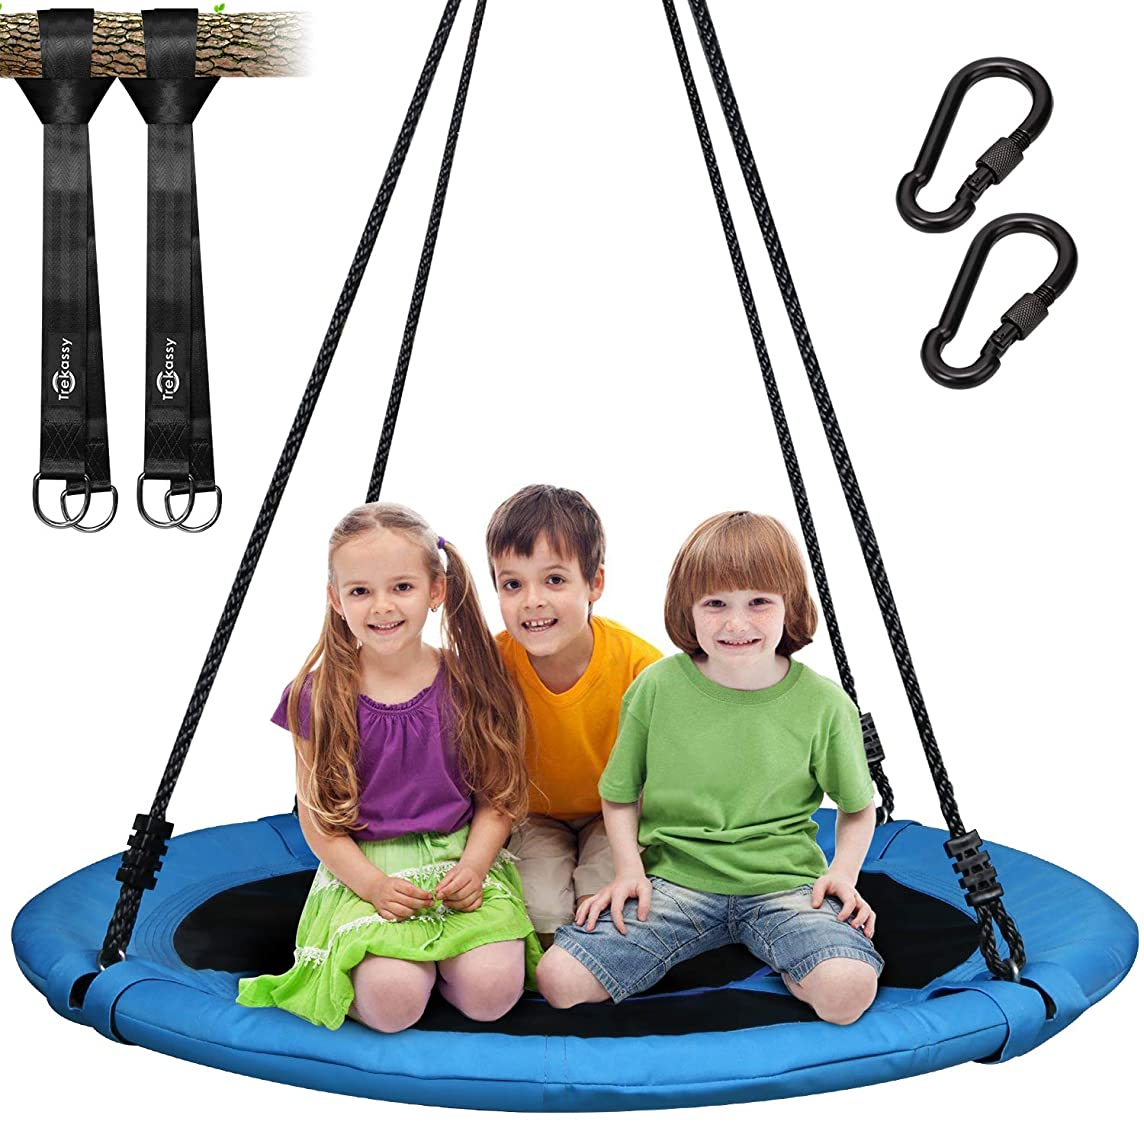 Trekassy 700lb Saucer Tree Swing for Kids Adults 40 Inch 900D Oxford Waterproof Frame with 2 Hanging Straps